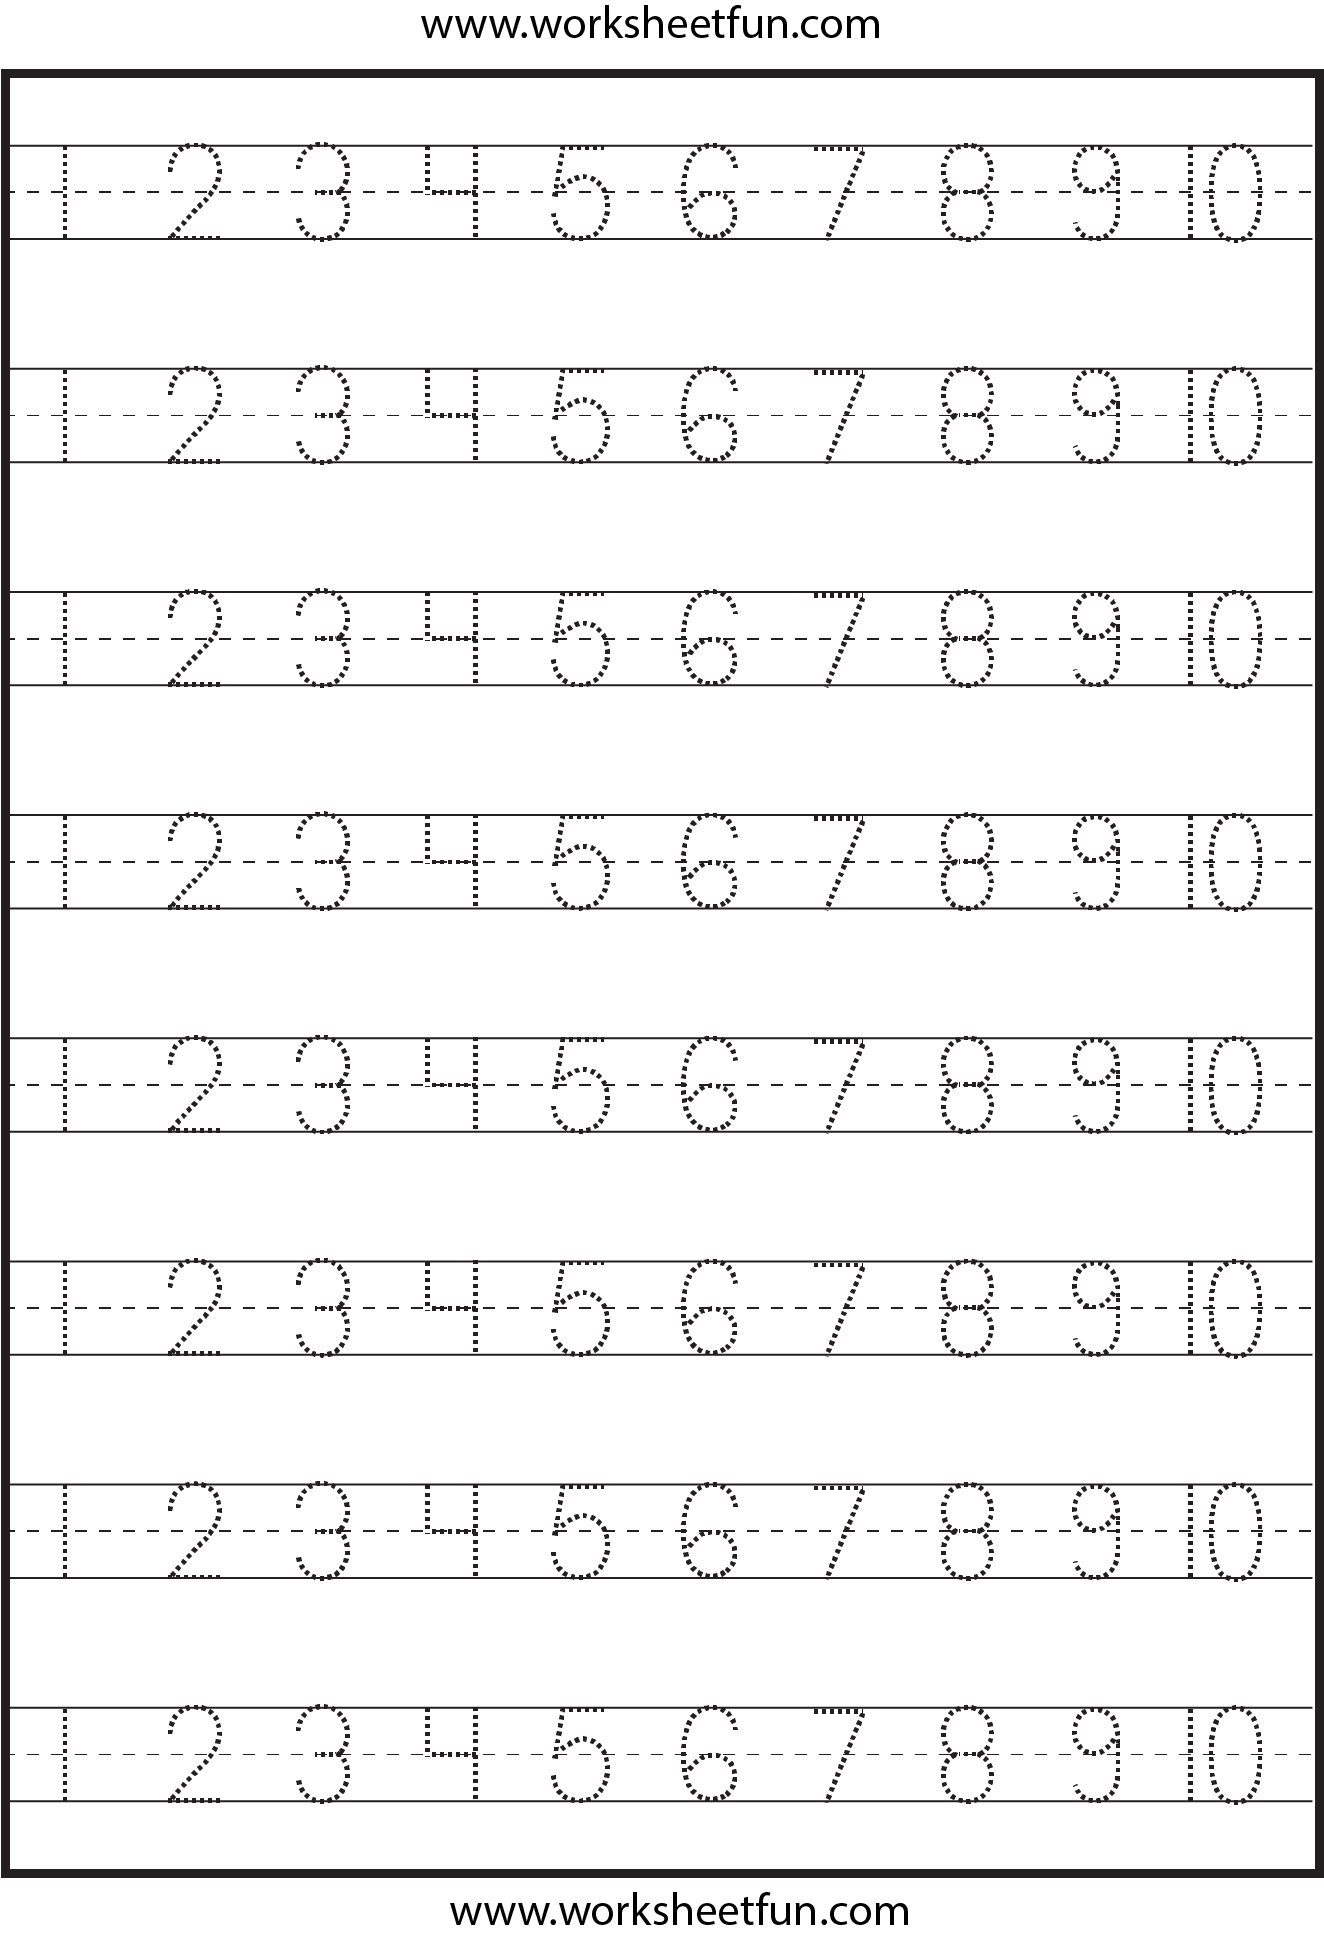 Worksheets Printable Number Worksheets number tracing 1 10 worksheet free printable worksheets tracing